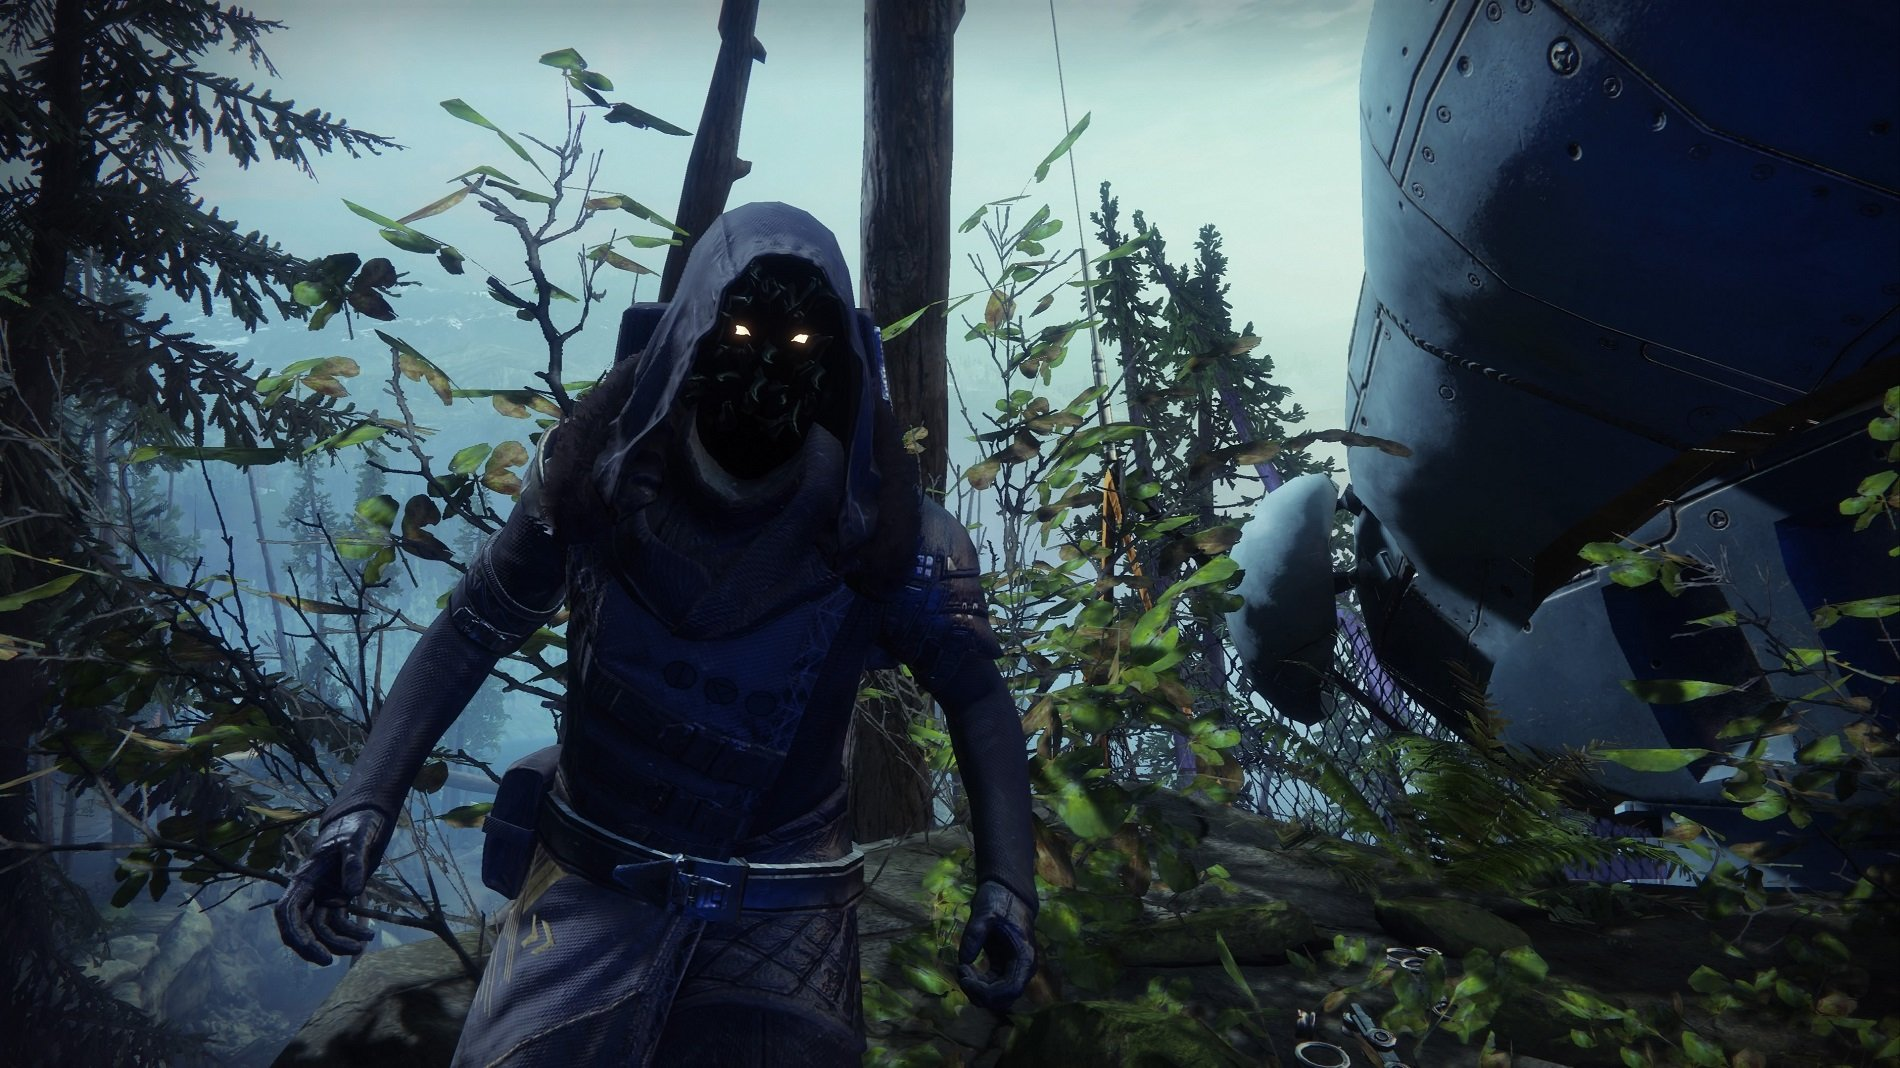 Where to find Xur in Destiny 2 - March 27, 2020